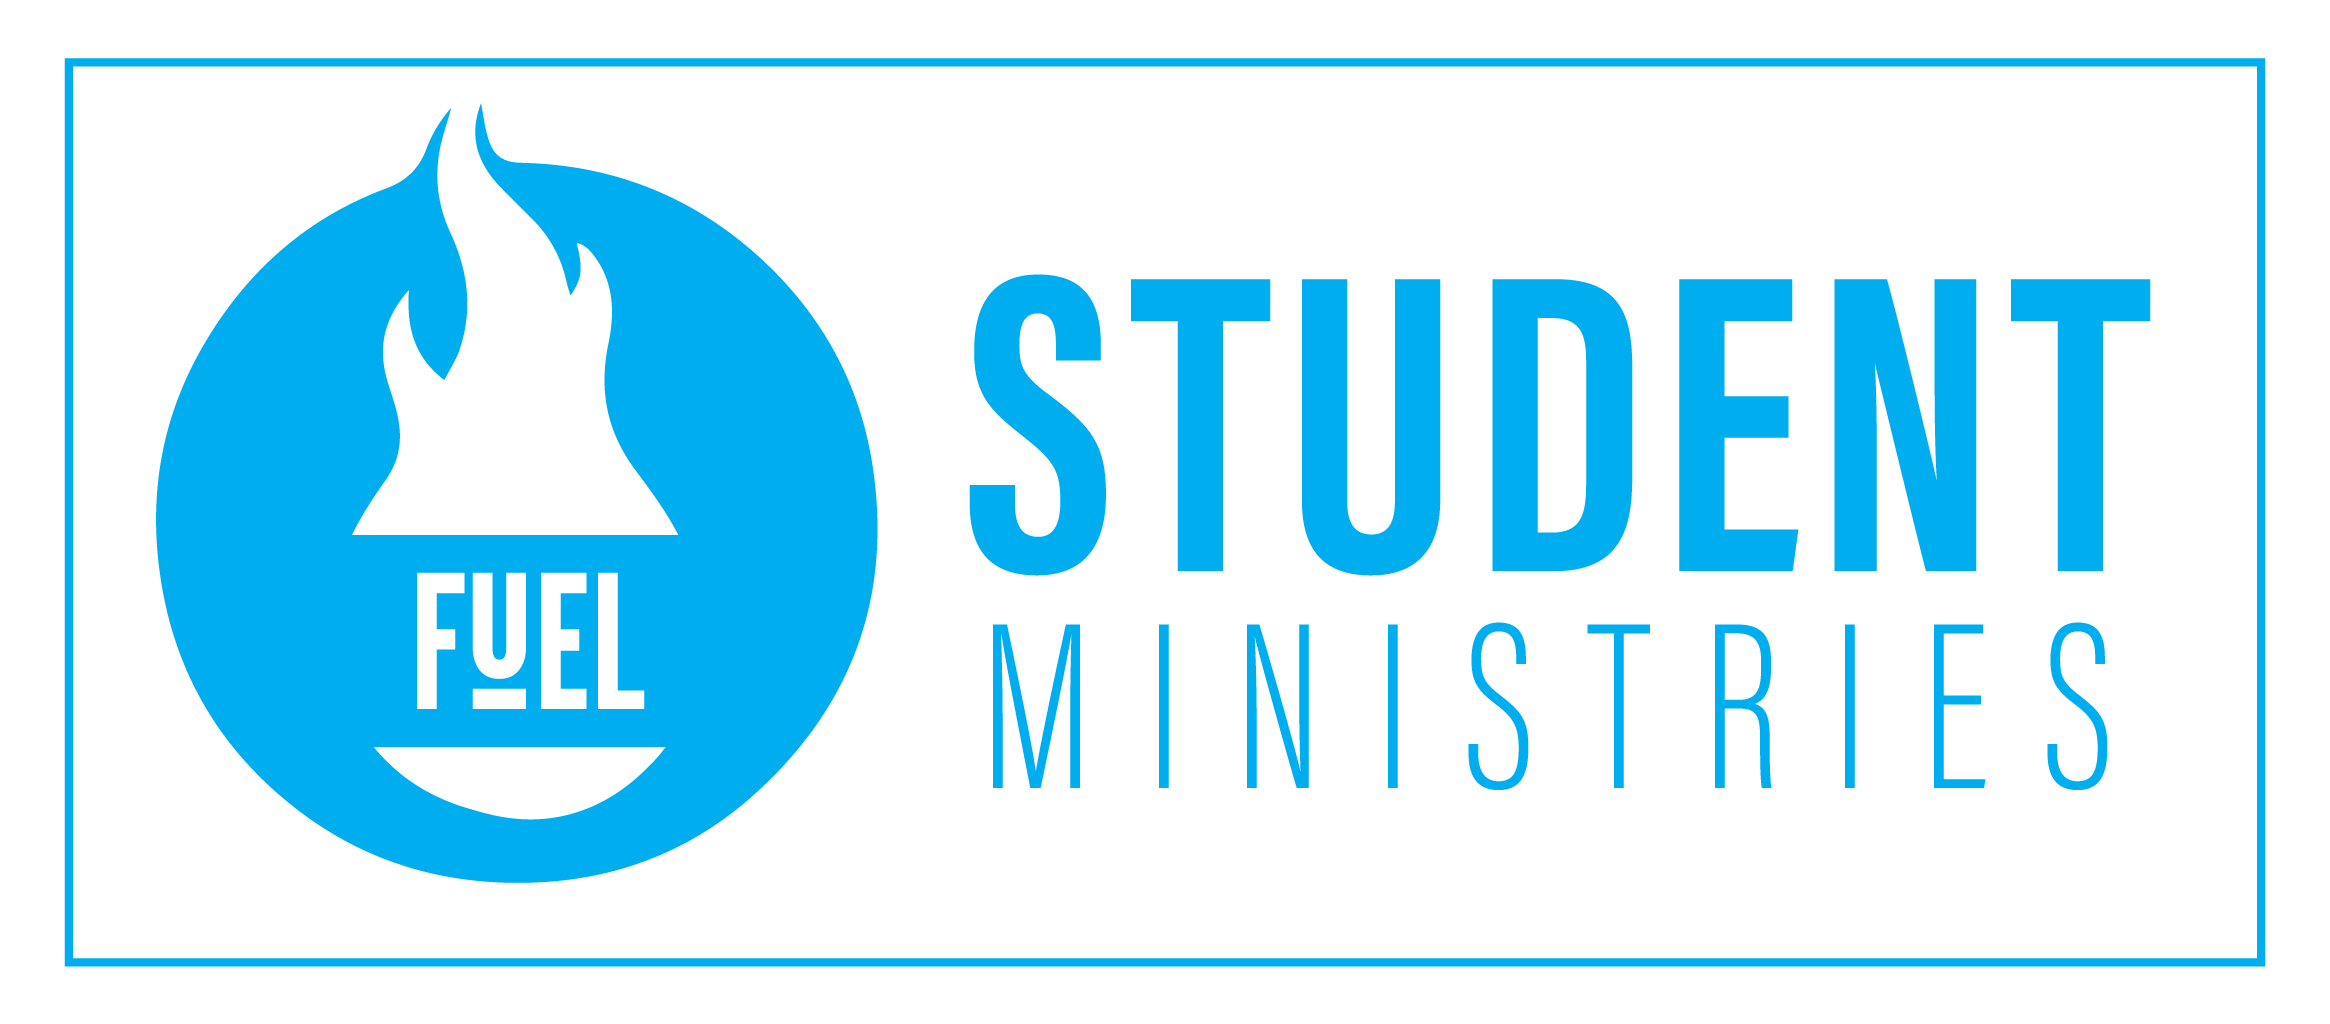 About Student Ministries